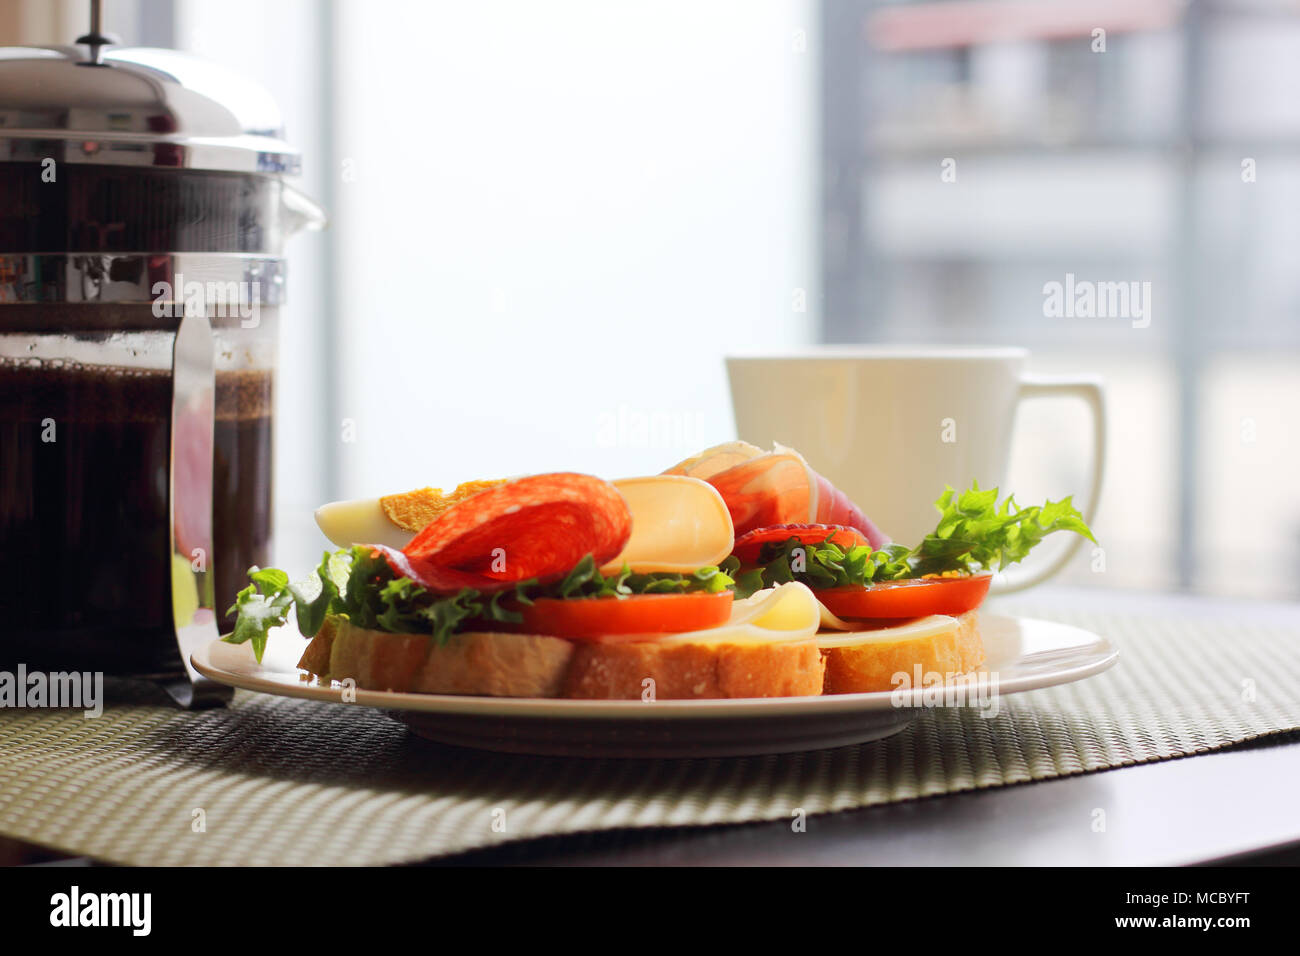 Healthy Breakfast With Sandwiches And Coffee In French Press Scandinavian Style Stock Photo Alamy